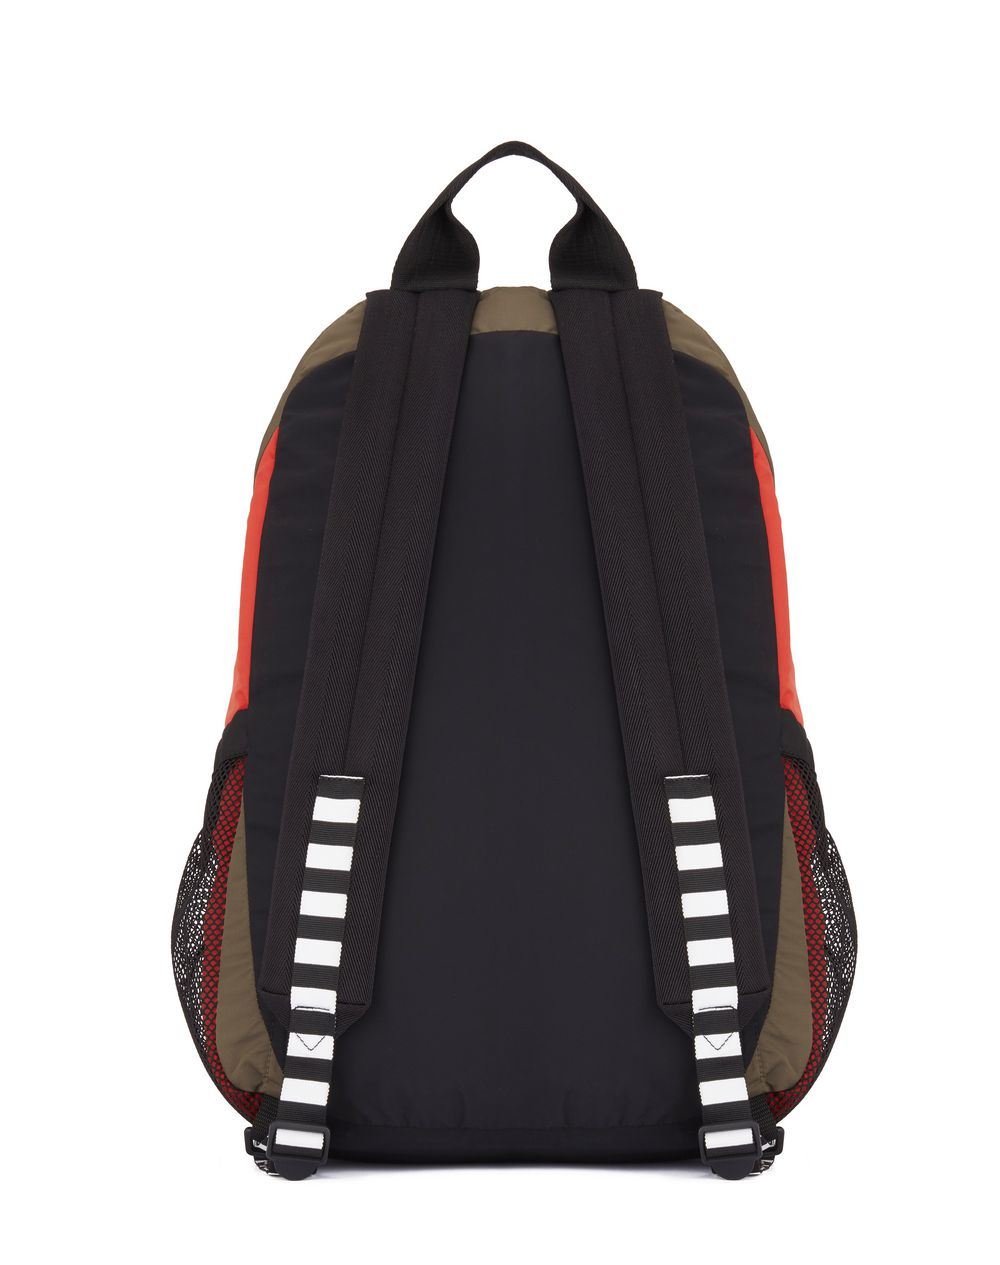 """ENTER NOTHING"" ZIPPED BACKPACK - Lanvin"